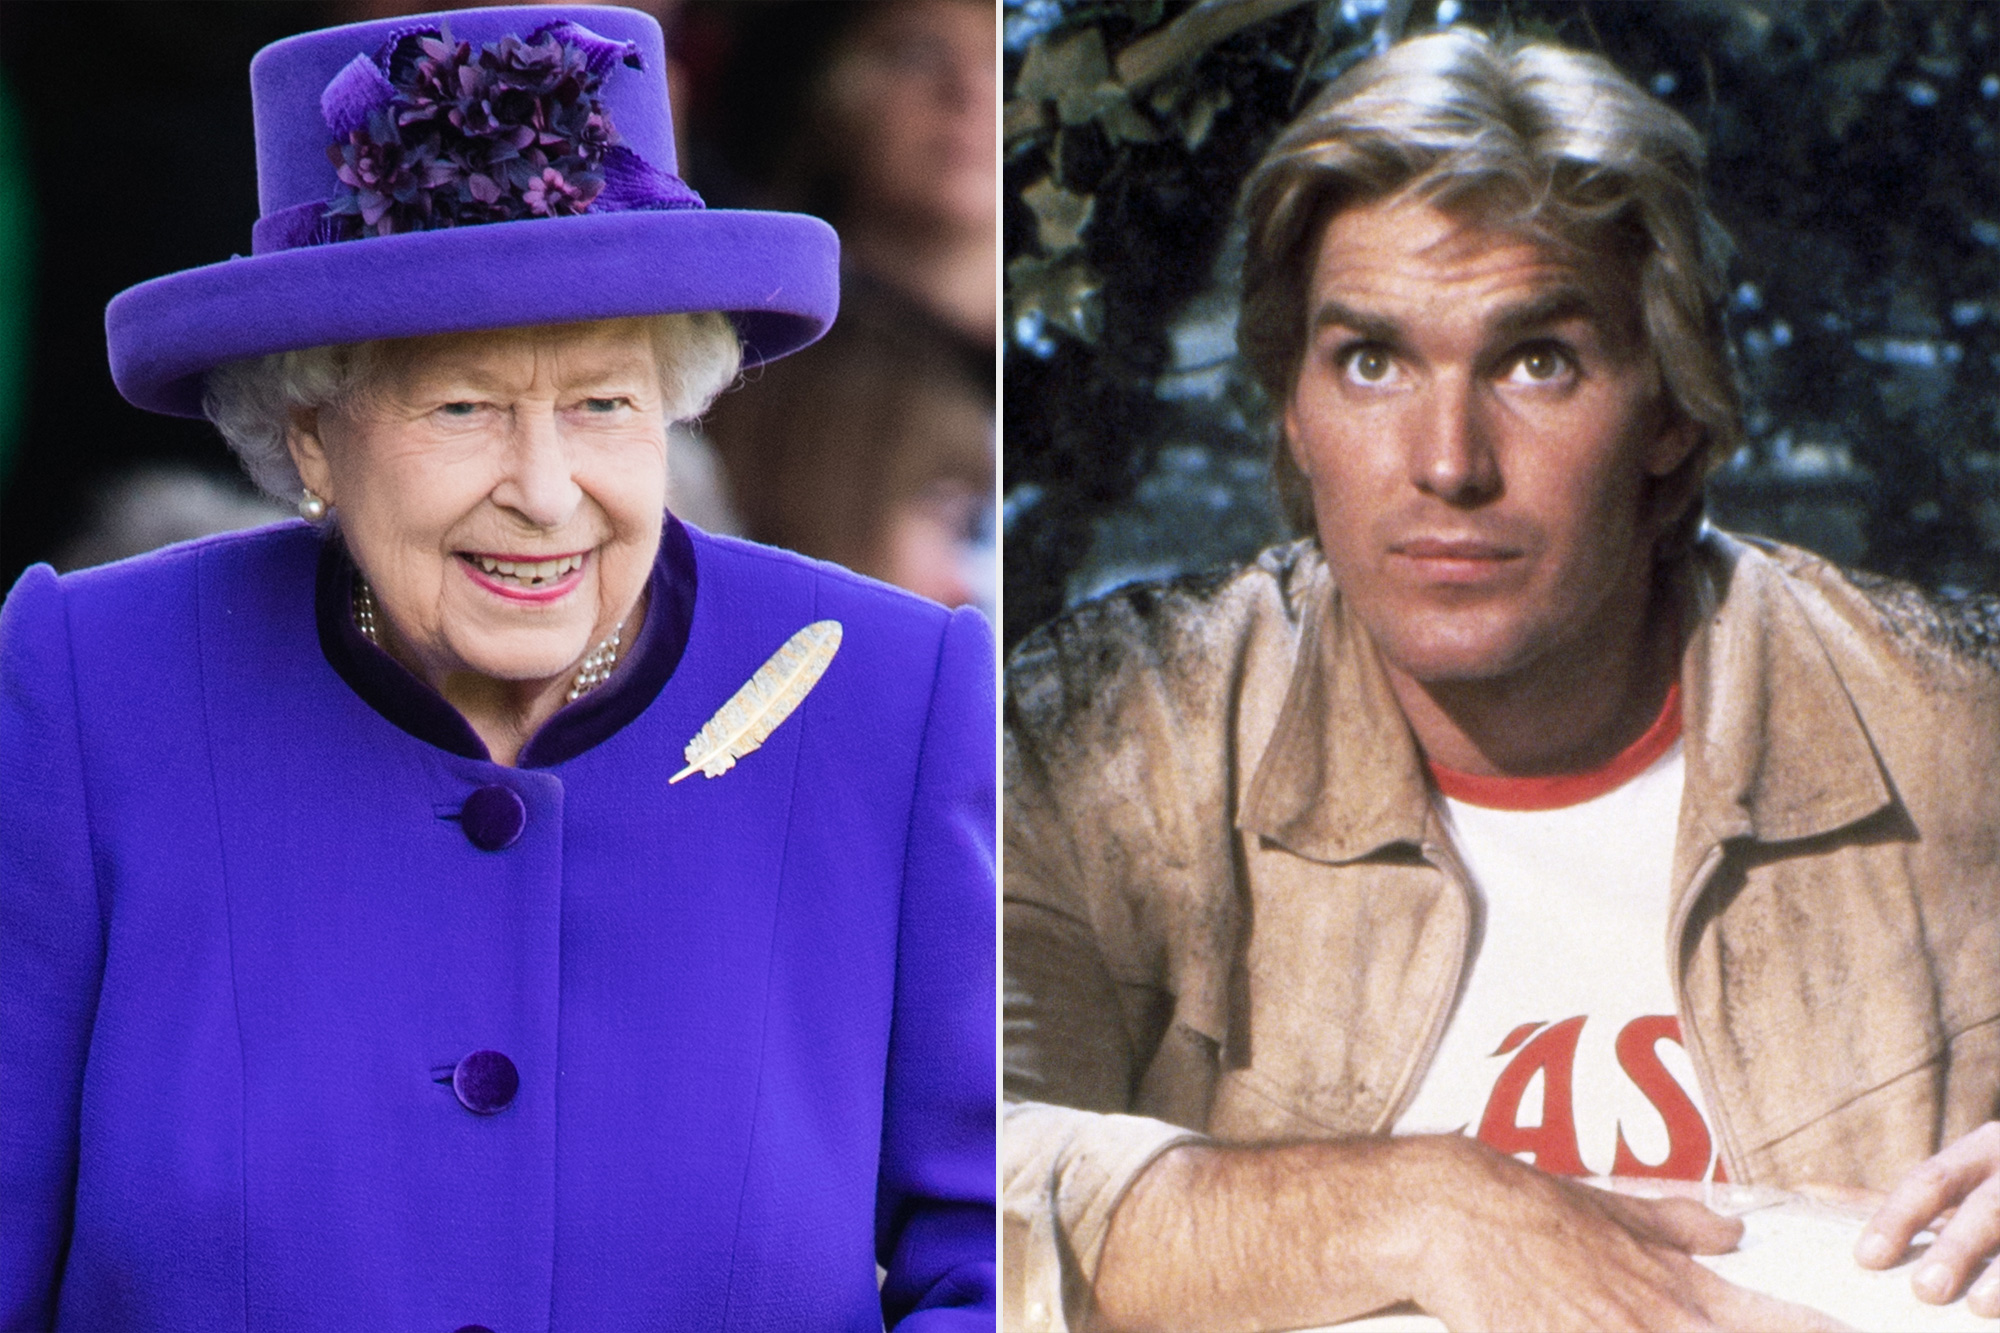 Queen Elizabeth Flash Gordon